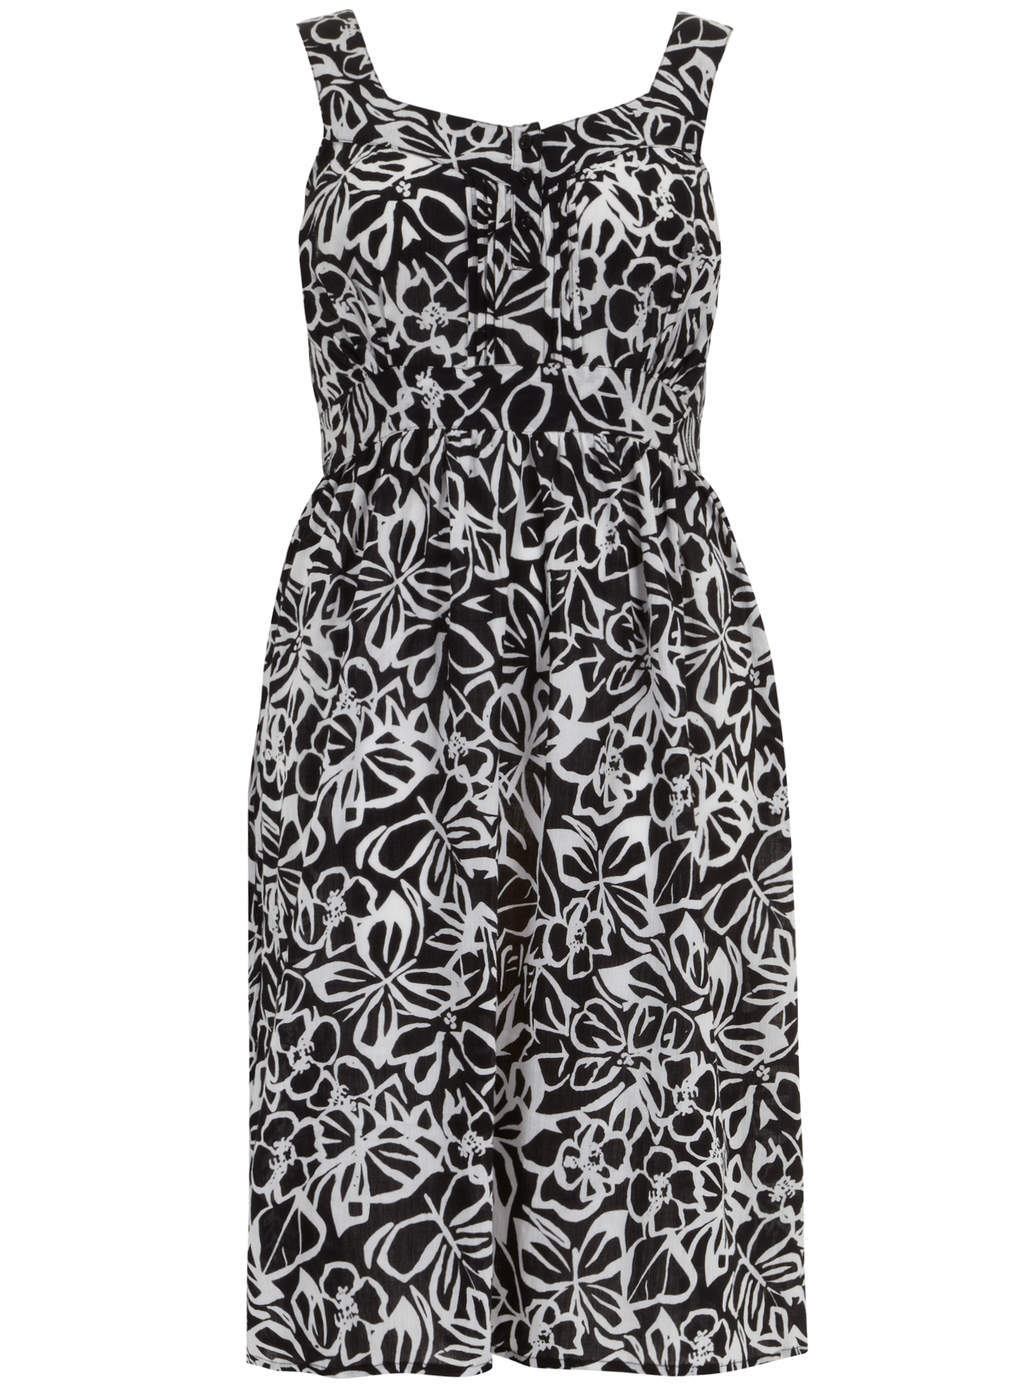 Evasn Black Butterfly Print Midi Dress - length: mid thigh; sleeve style: standard vest straps/shoulder straps; fit: fitted at waist; style: sundress; neckline: sweetheart; secondary colour: white; predominant colour: black; occasions: casual, holiday; fibres: cotton - 100%; hip detail: subtle/flattering hip detail; sleeve length: sleeveless; pattern type: fabric; pattern size: standard; pattern: patterned/print; texture group: jersey - stretchy/drapey; season: s/s 2014; trends: monochrome